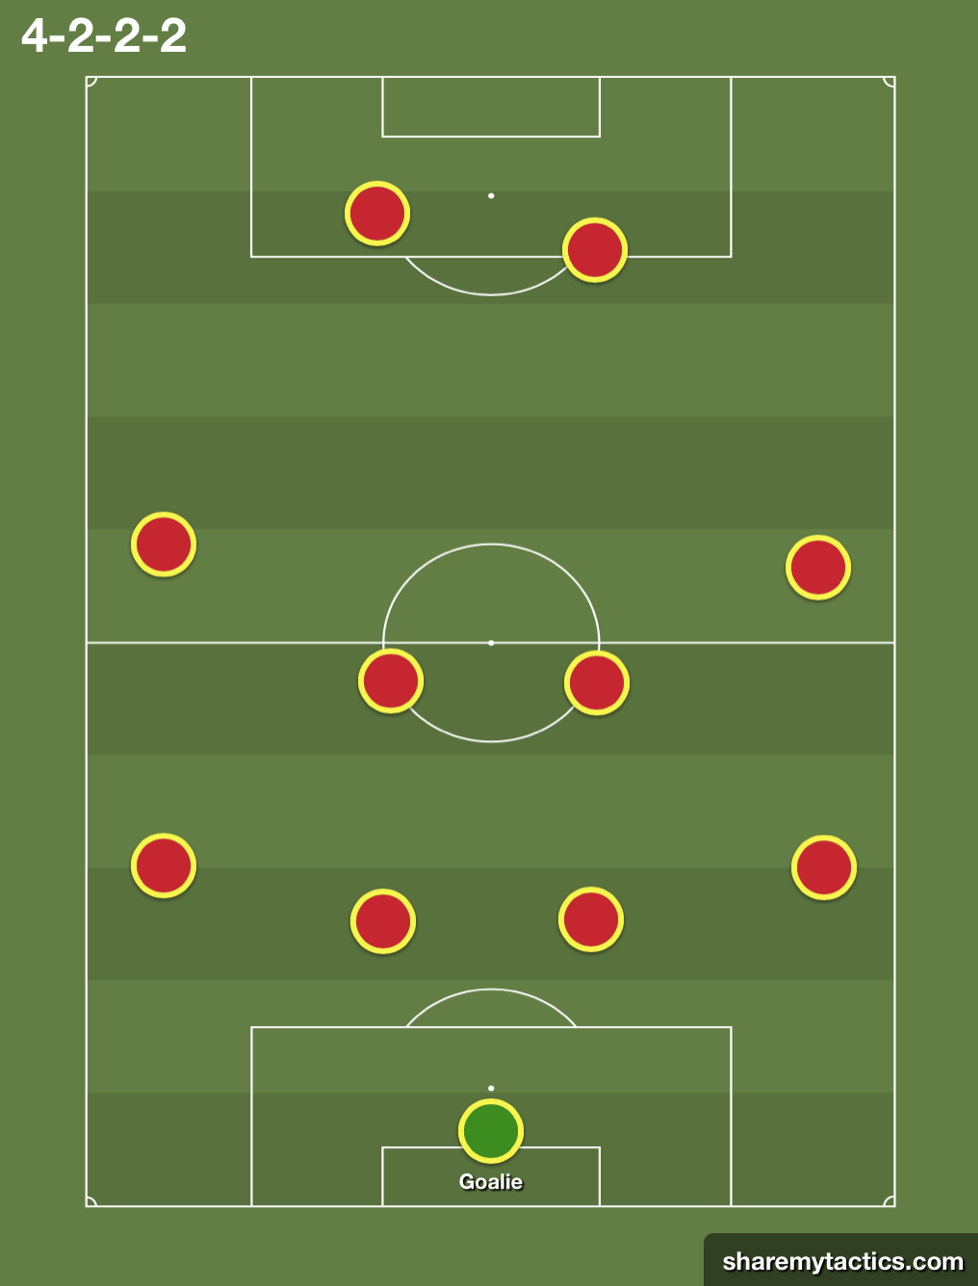 Southampton 2019/20: their improvement since getting beat 0-9 - scout report tactical analysis tactics